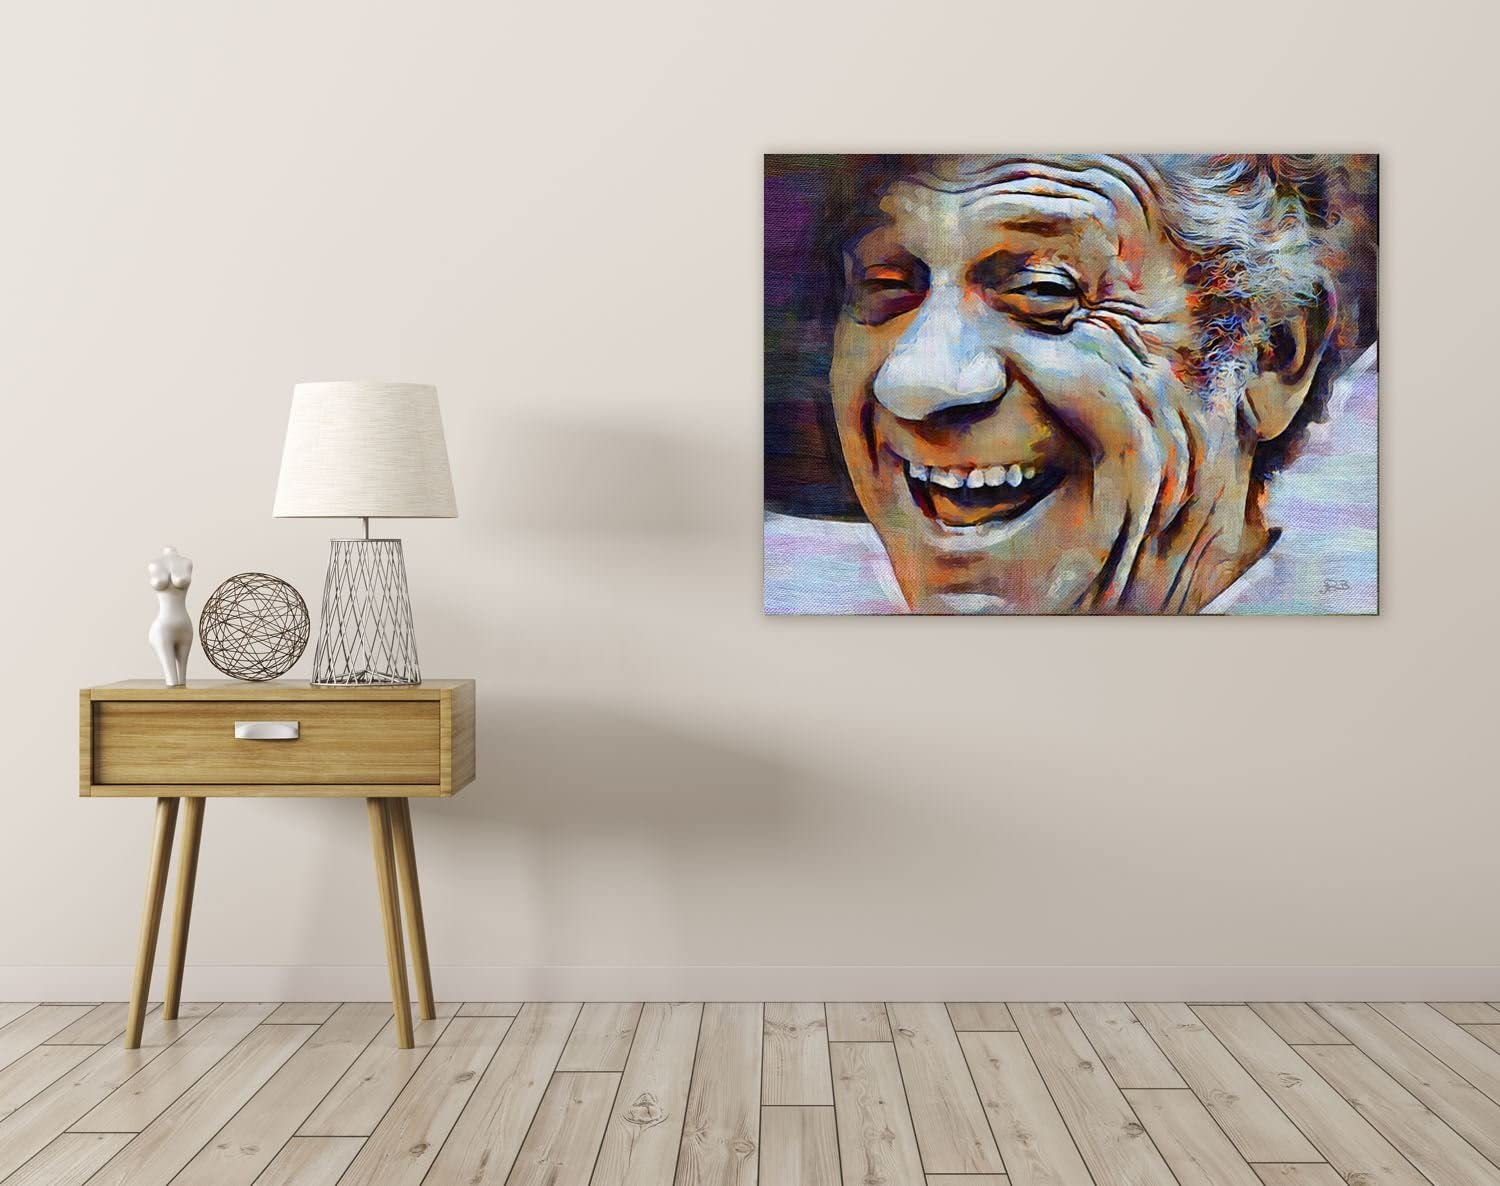 SID JAMES ENGLISH COMEDIAN CARRY ON FILM ART PRINT POSTER OIL PAINTING LLFF0182